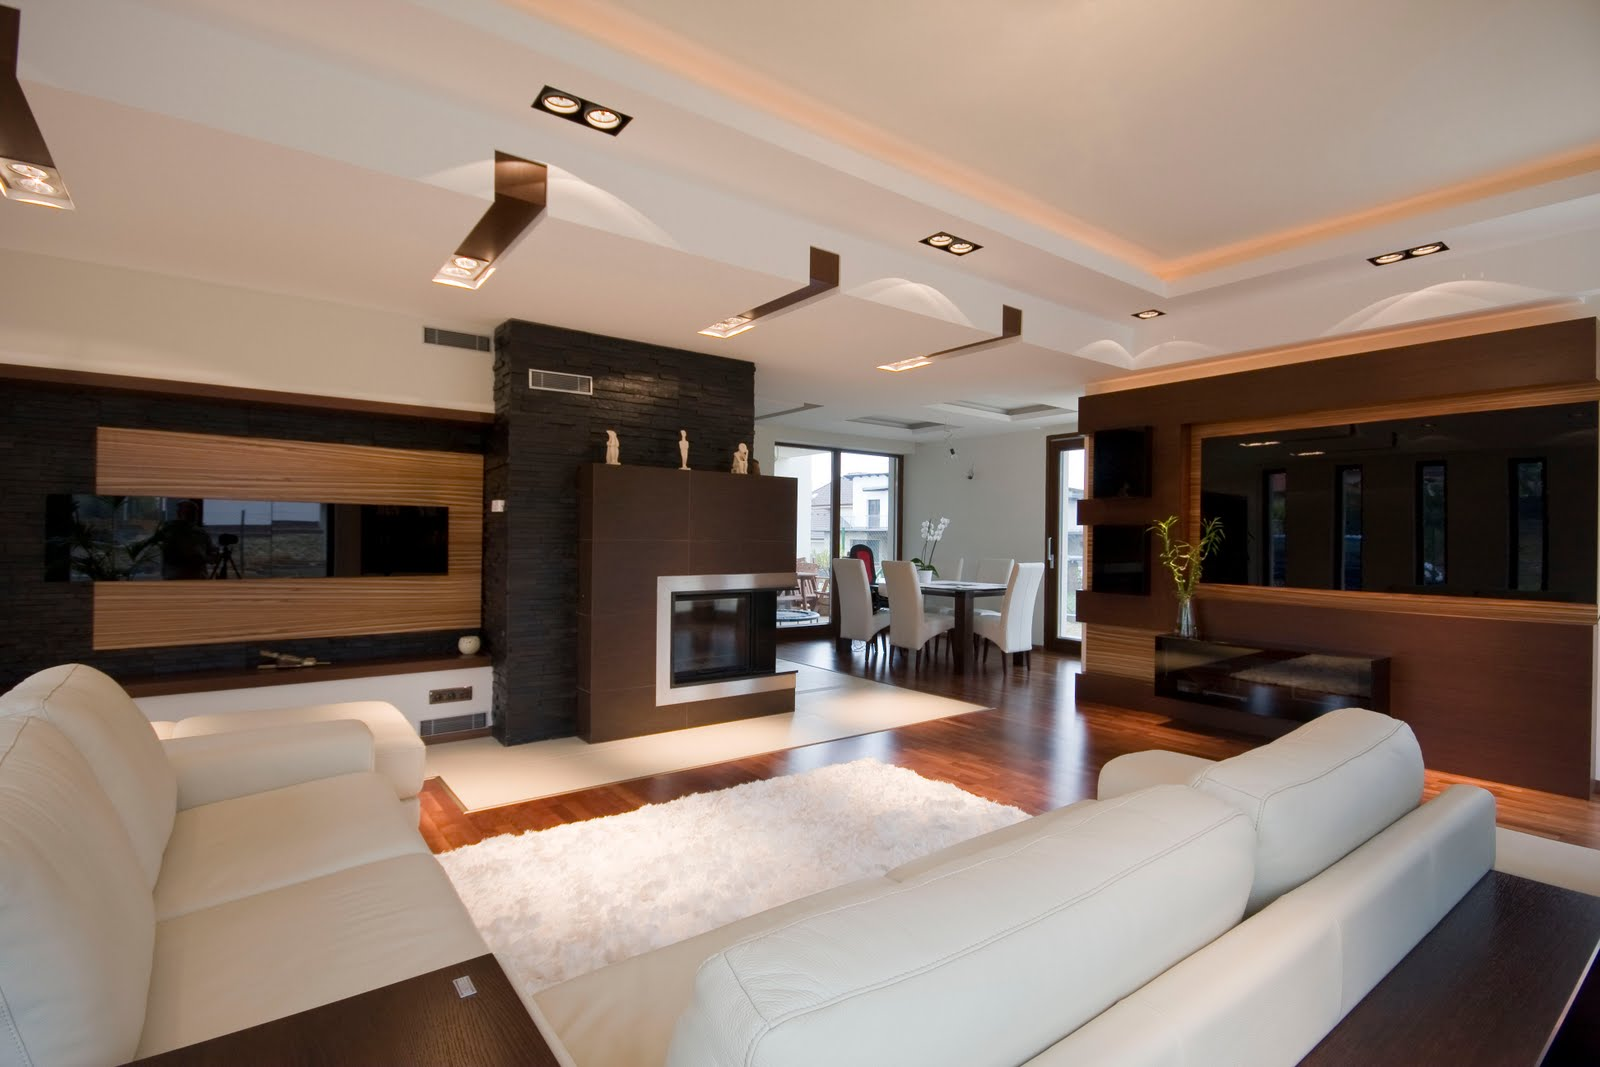 modern interior living room exclusive design | 30 Modern Luxury Living Room Design Ideas